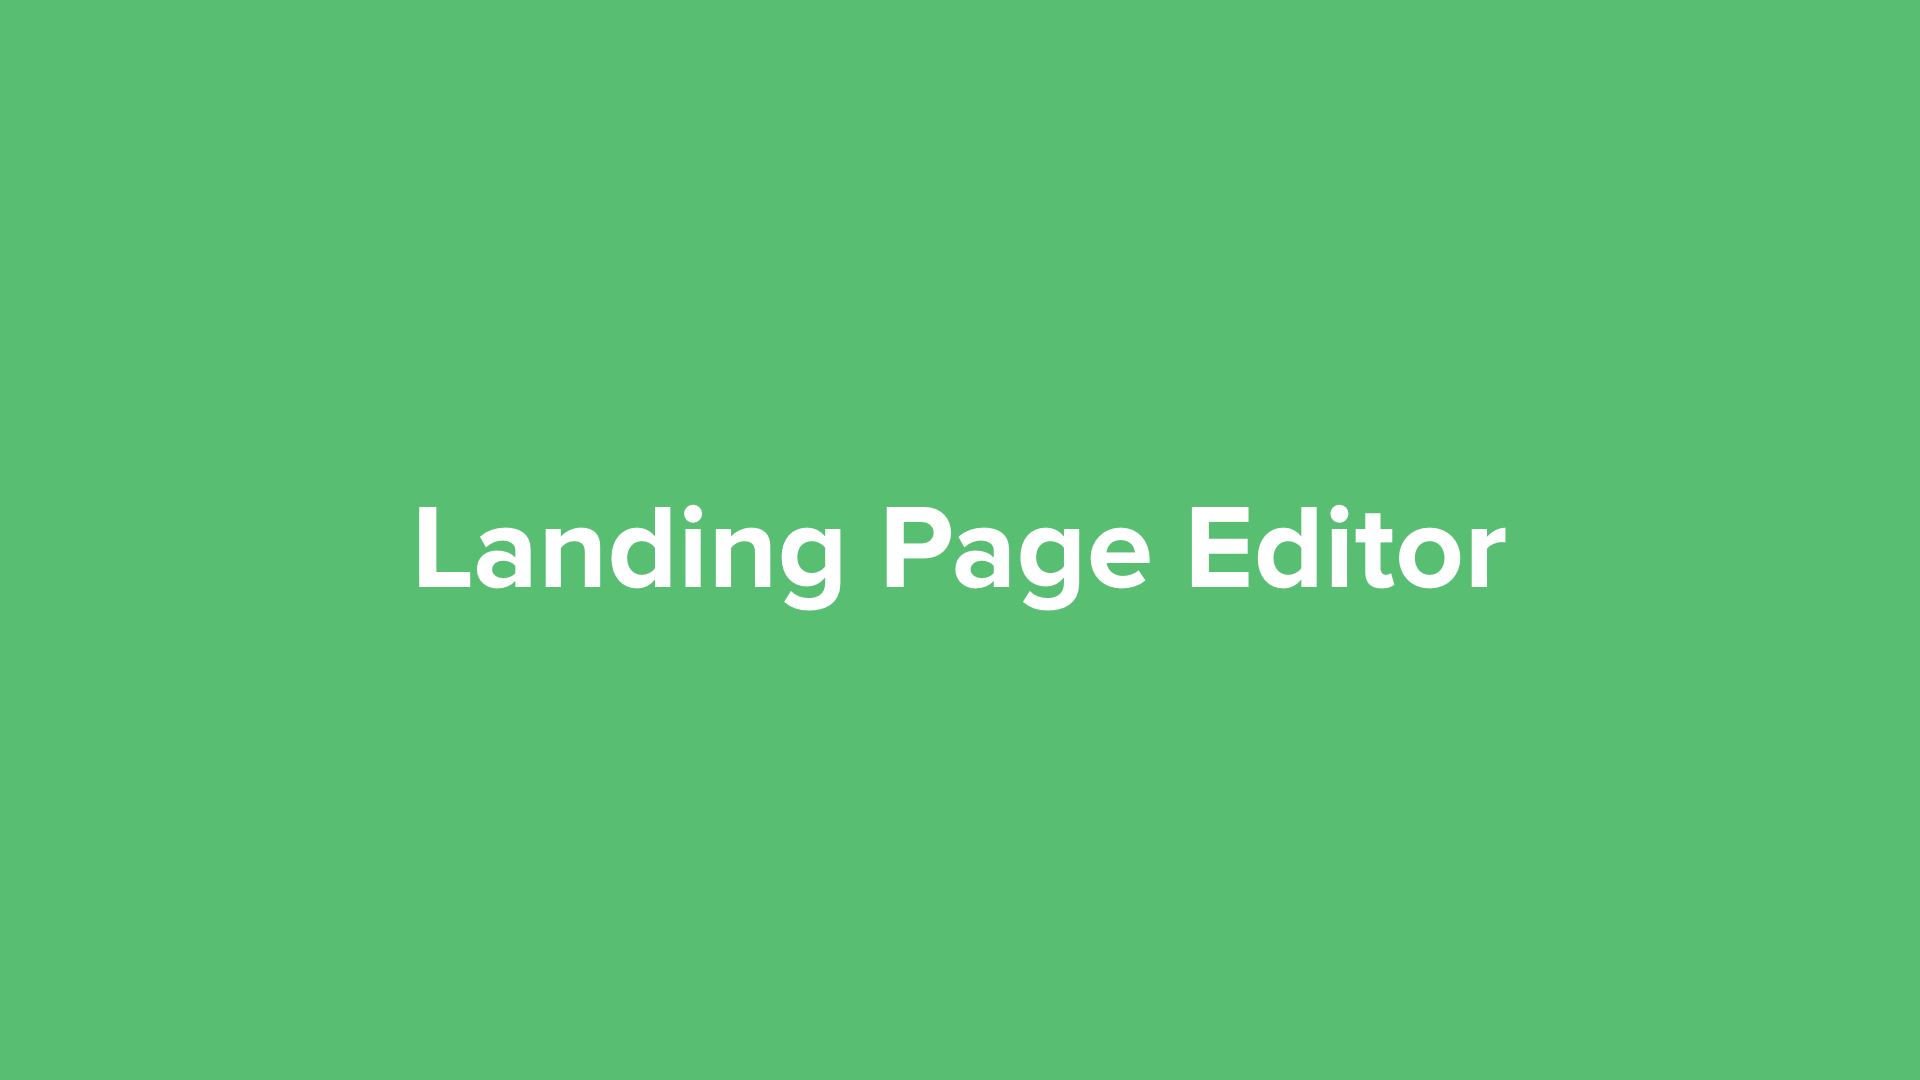 How to Use the Landing Page Editor - Video Tutorial